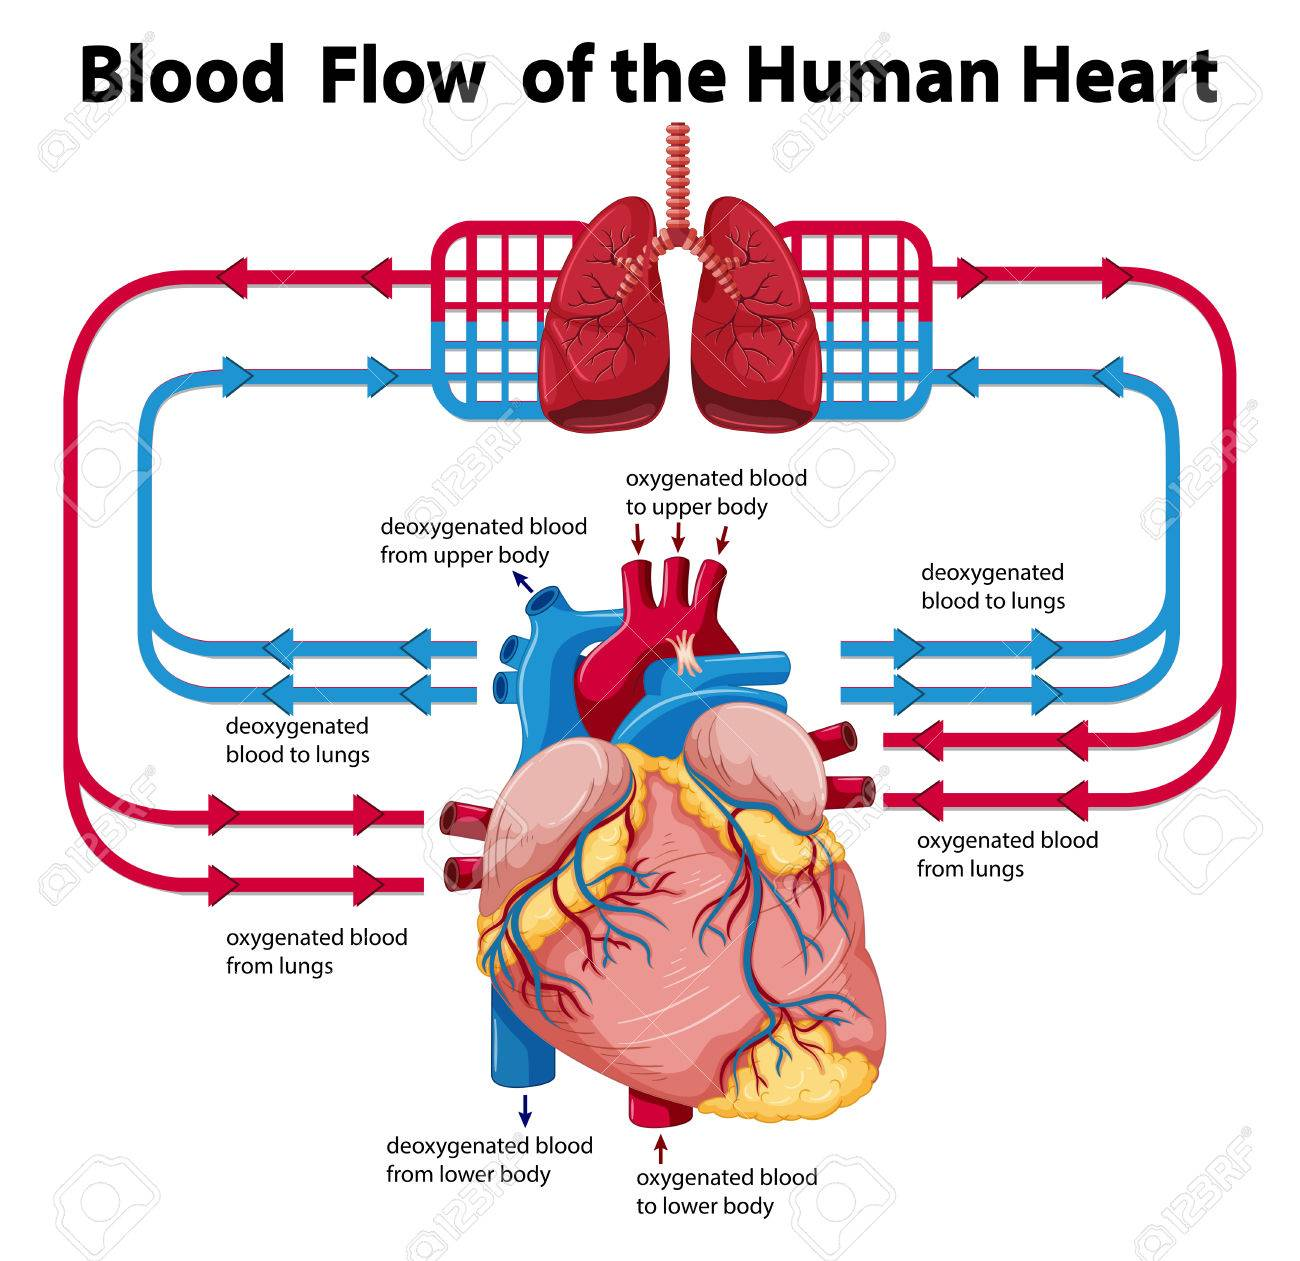 realistic heart diagram double pole throw switch wiring of blood flow data schema showing human illustration royalty free azygos